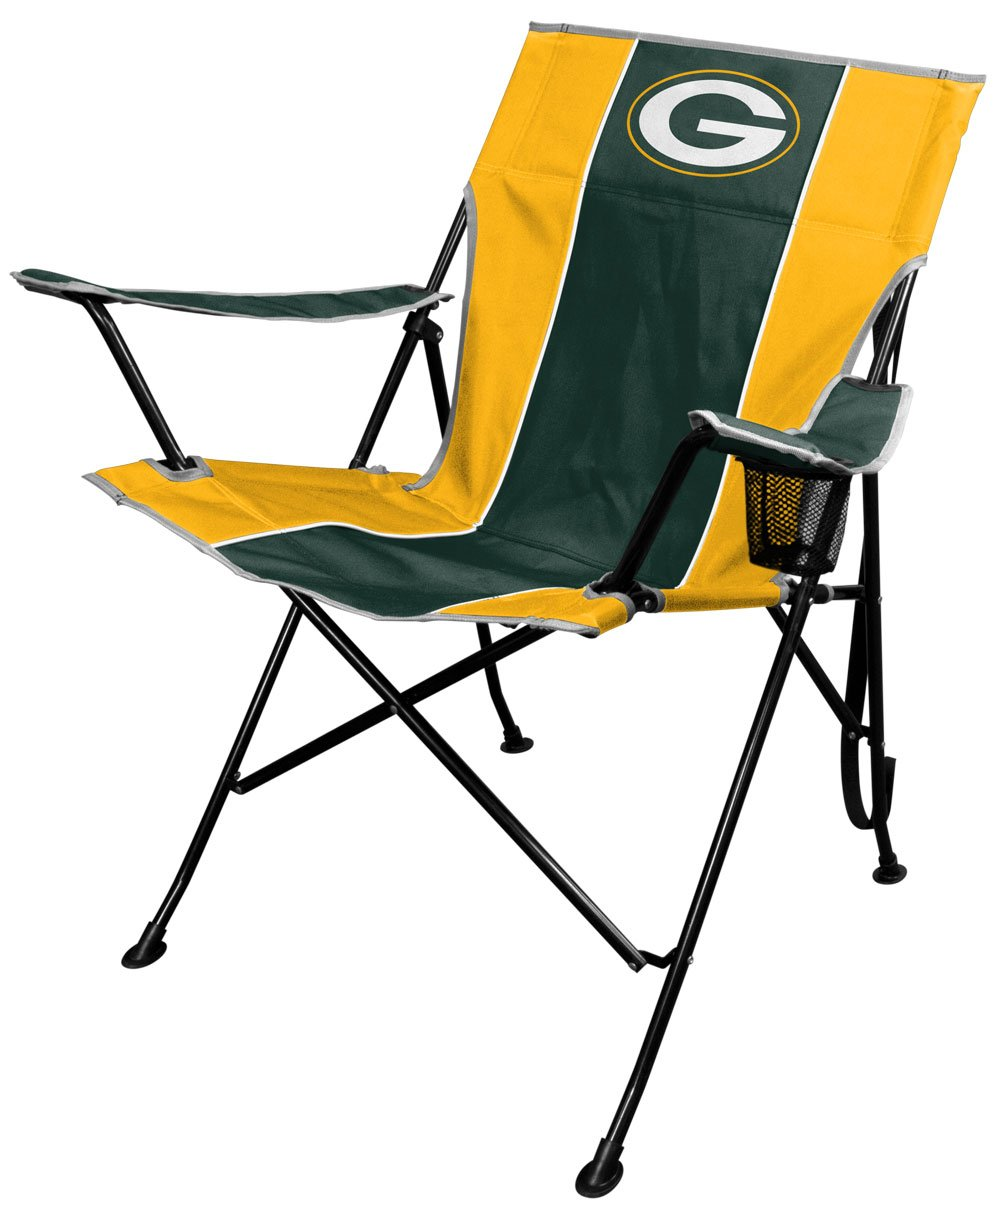 Amazon.com : NFL Portable Folding Tailgate Chair With Cup Holder And  Carrying Case : Sports U0026 Outdoors